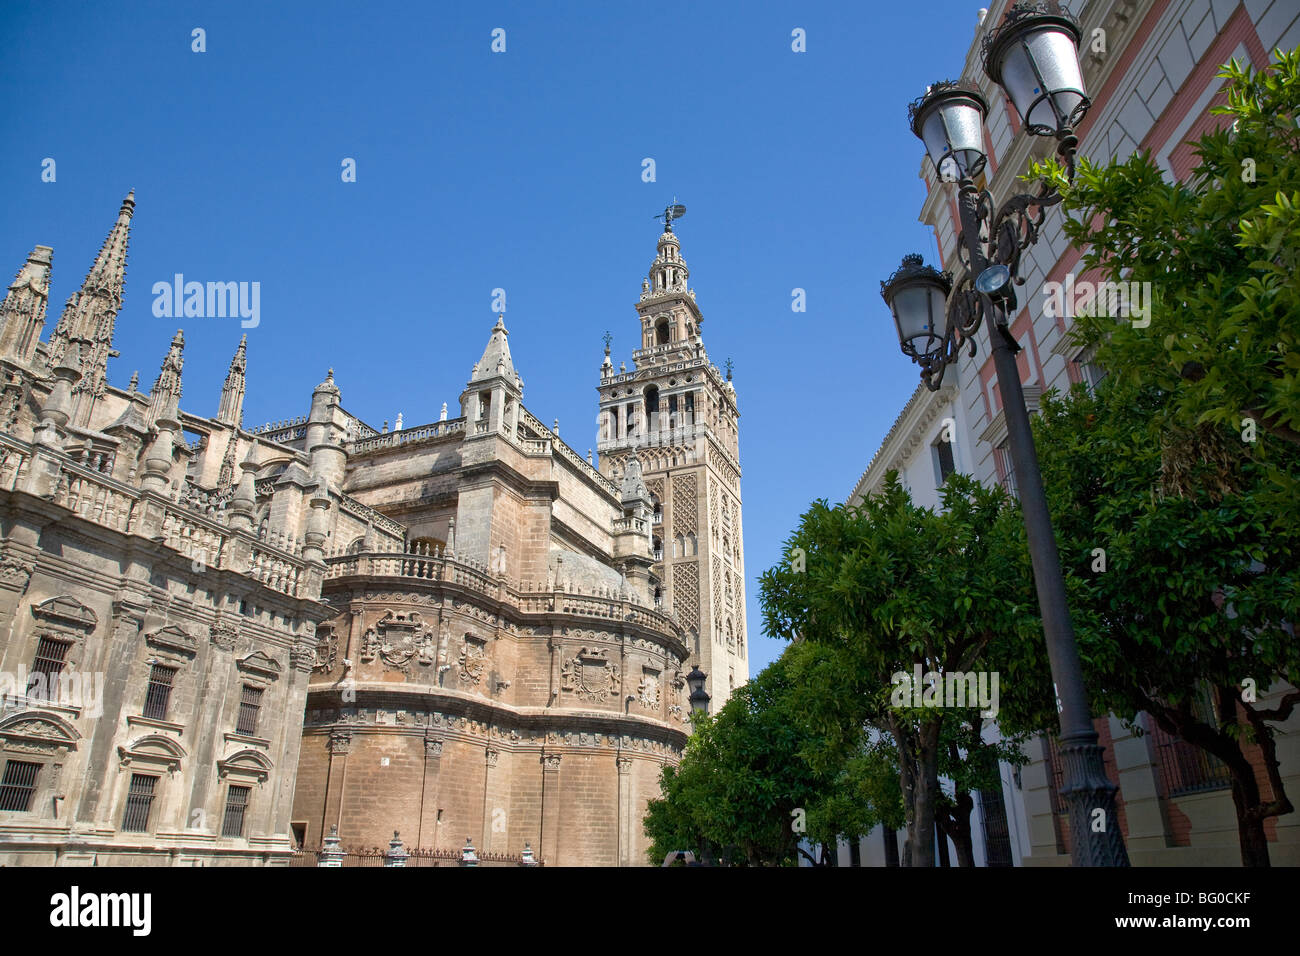 Lamppost in front of a cathedral, Seville Cathedral, Seville, Spain, Patrimonio de la Humanidad - Stock Image